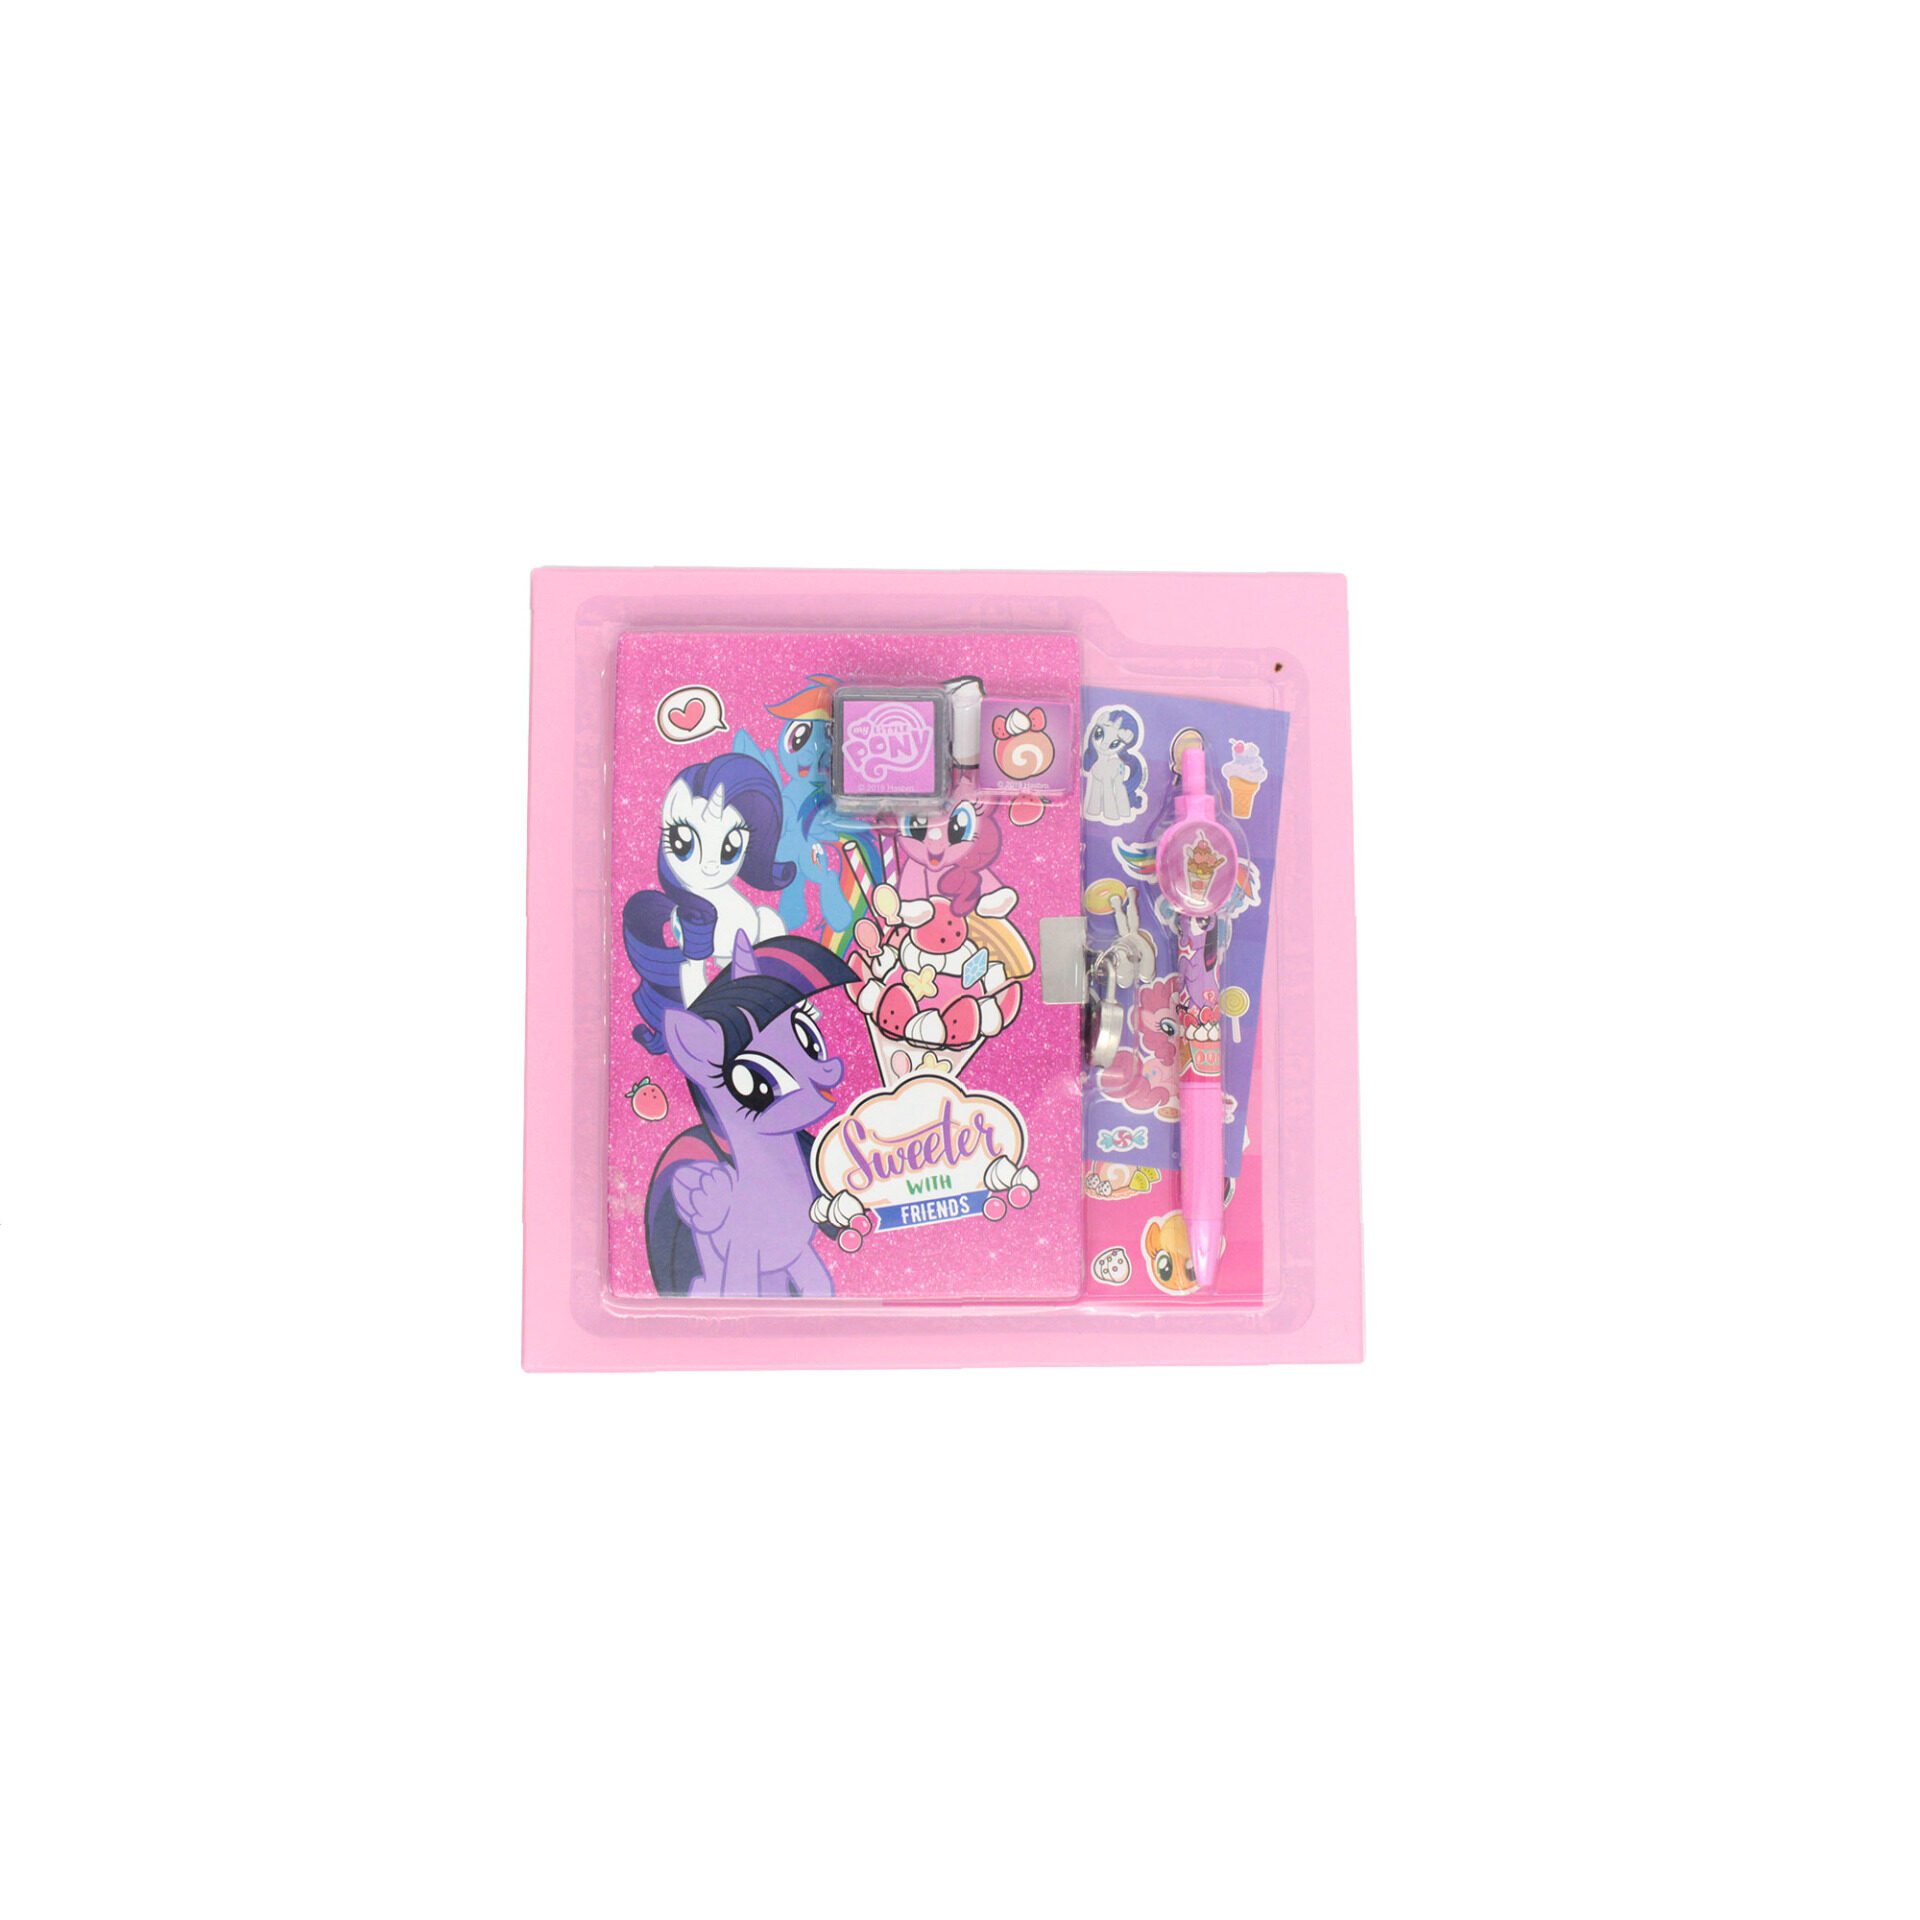 My Little Pony Secret Diary Set With Lock & 2 Keys Pen Stamp Pad Stamper & 2 Sticker Sheets For Girls